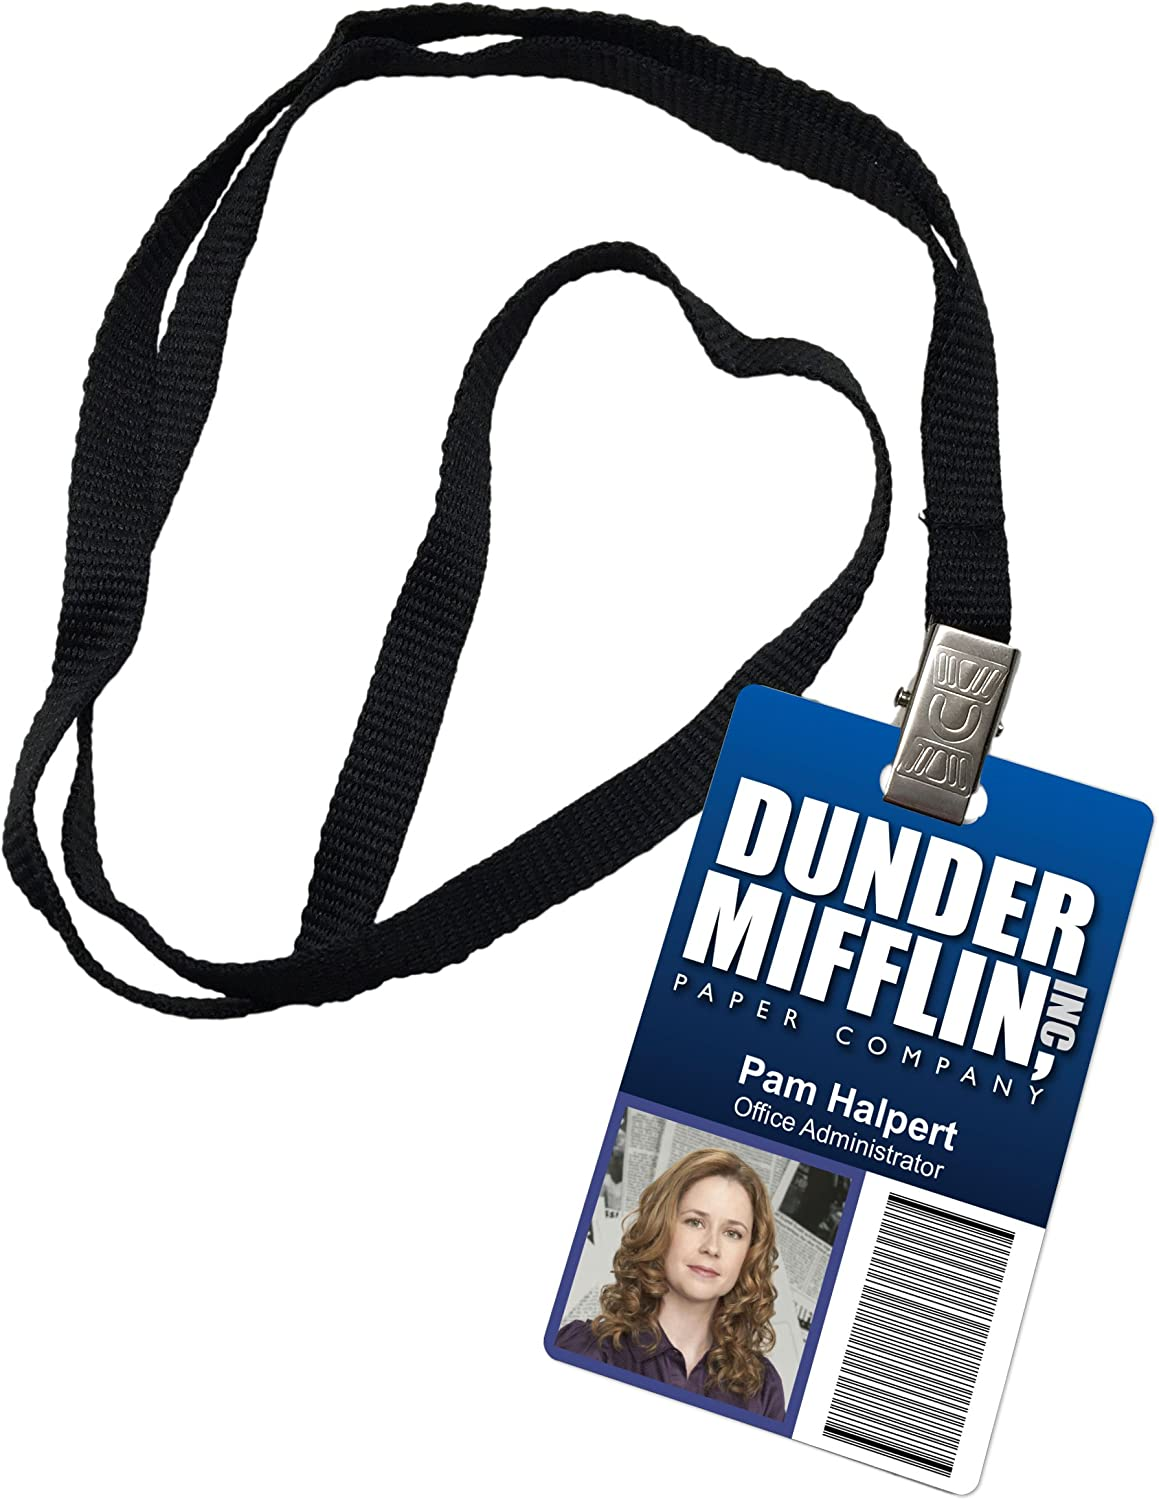 Pam Halpert Dunder Mifflin Inc. Novelty ID Badge The Office Prop Costume